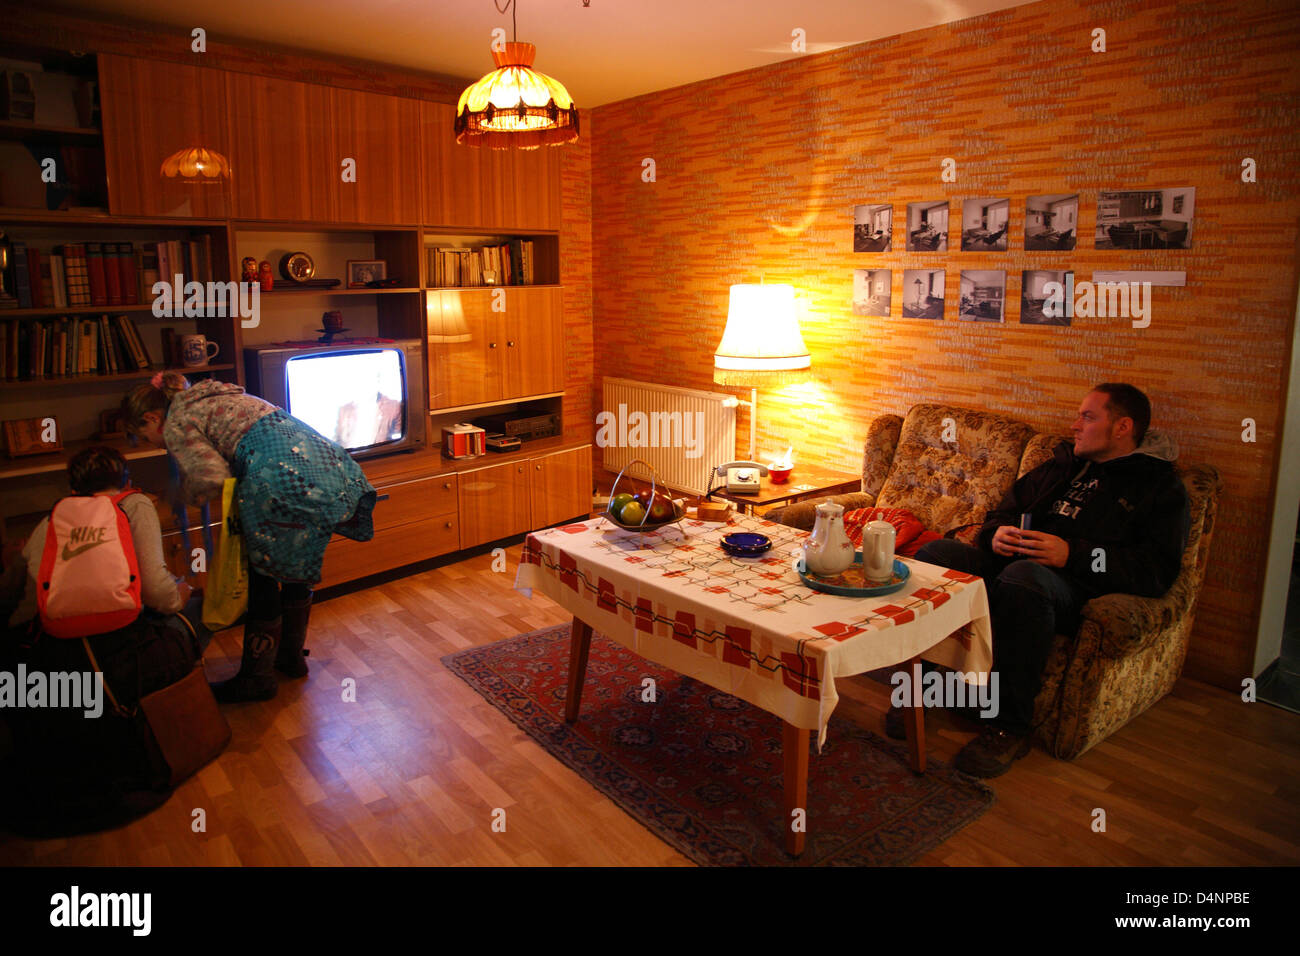 DDR-Museum at the Spree, living room, Berlin, Germany - Stock Image